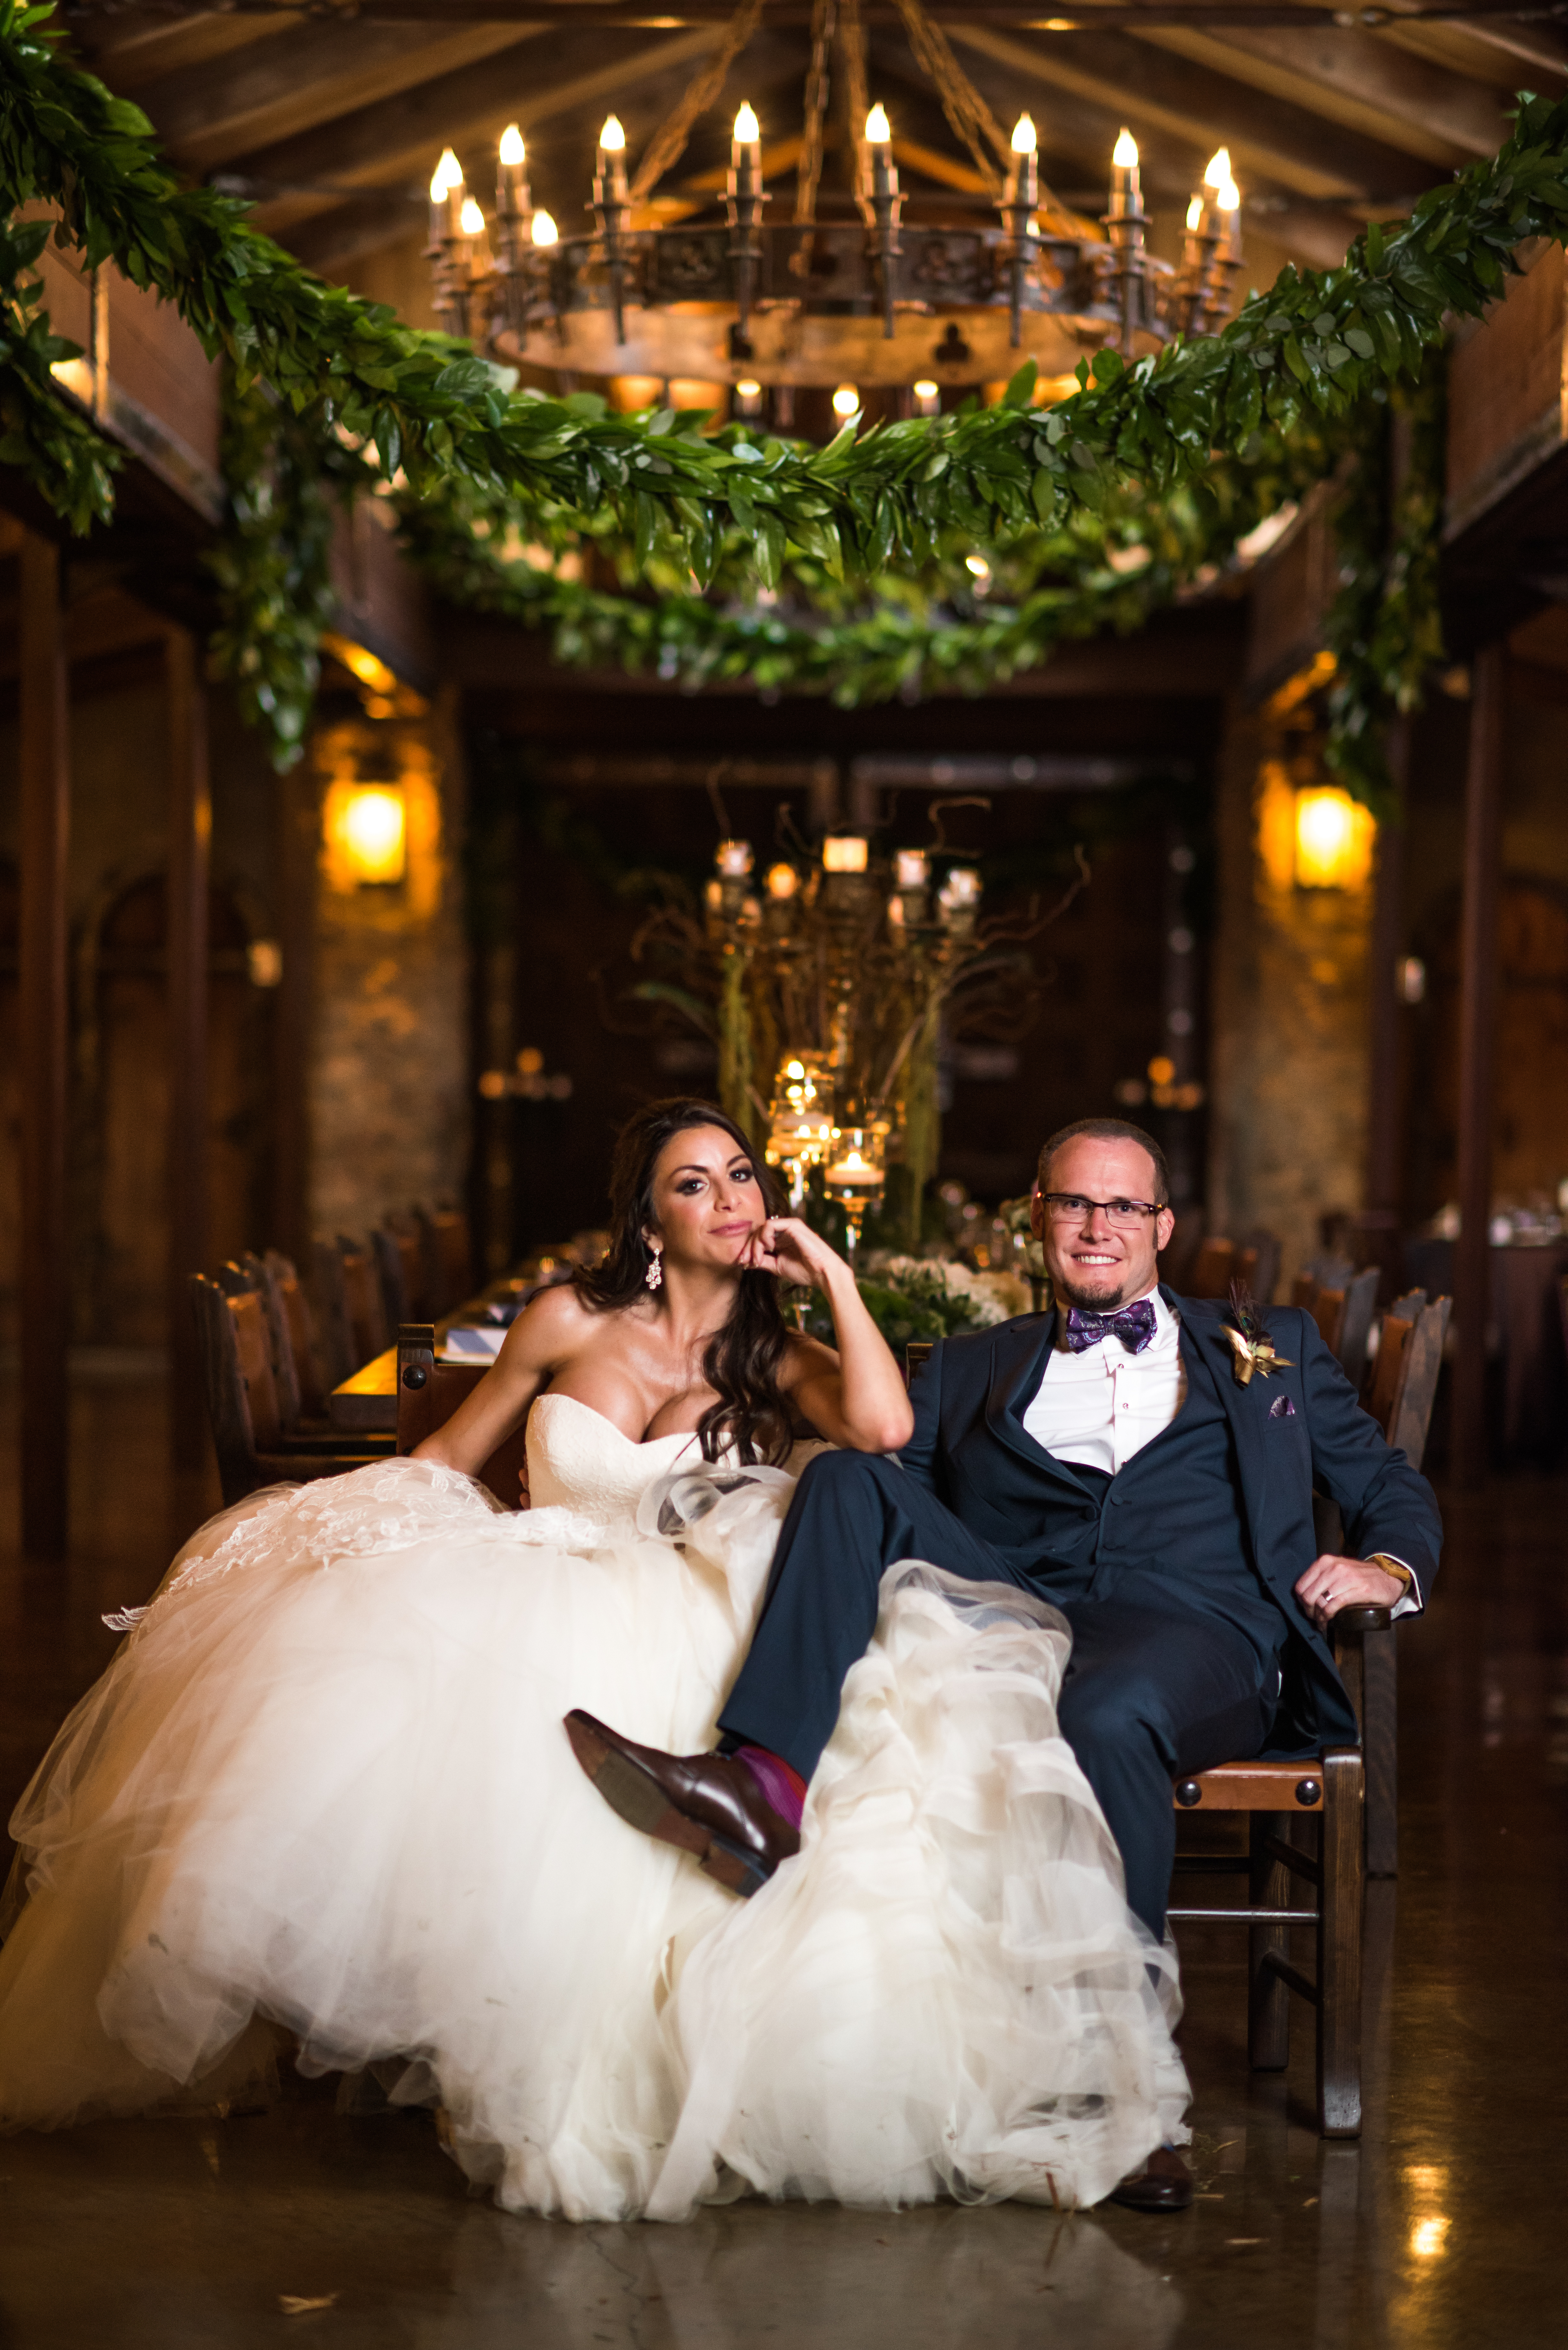 13 Jul Great Wedding Places In Miami